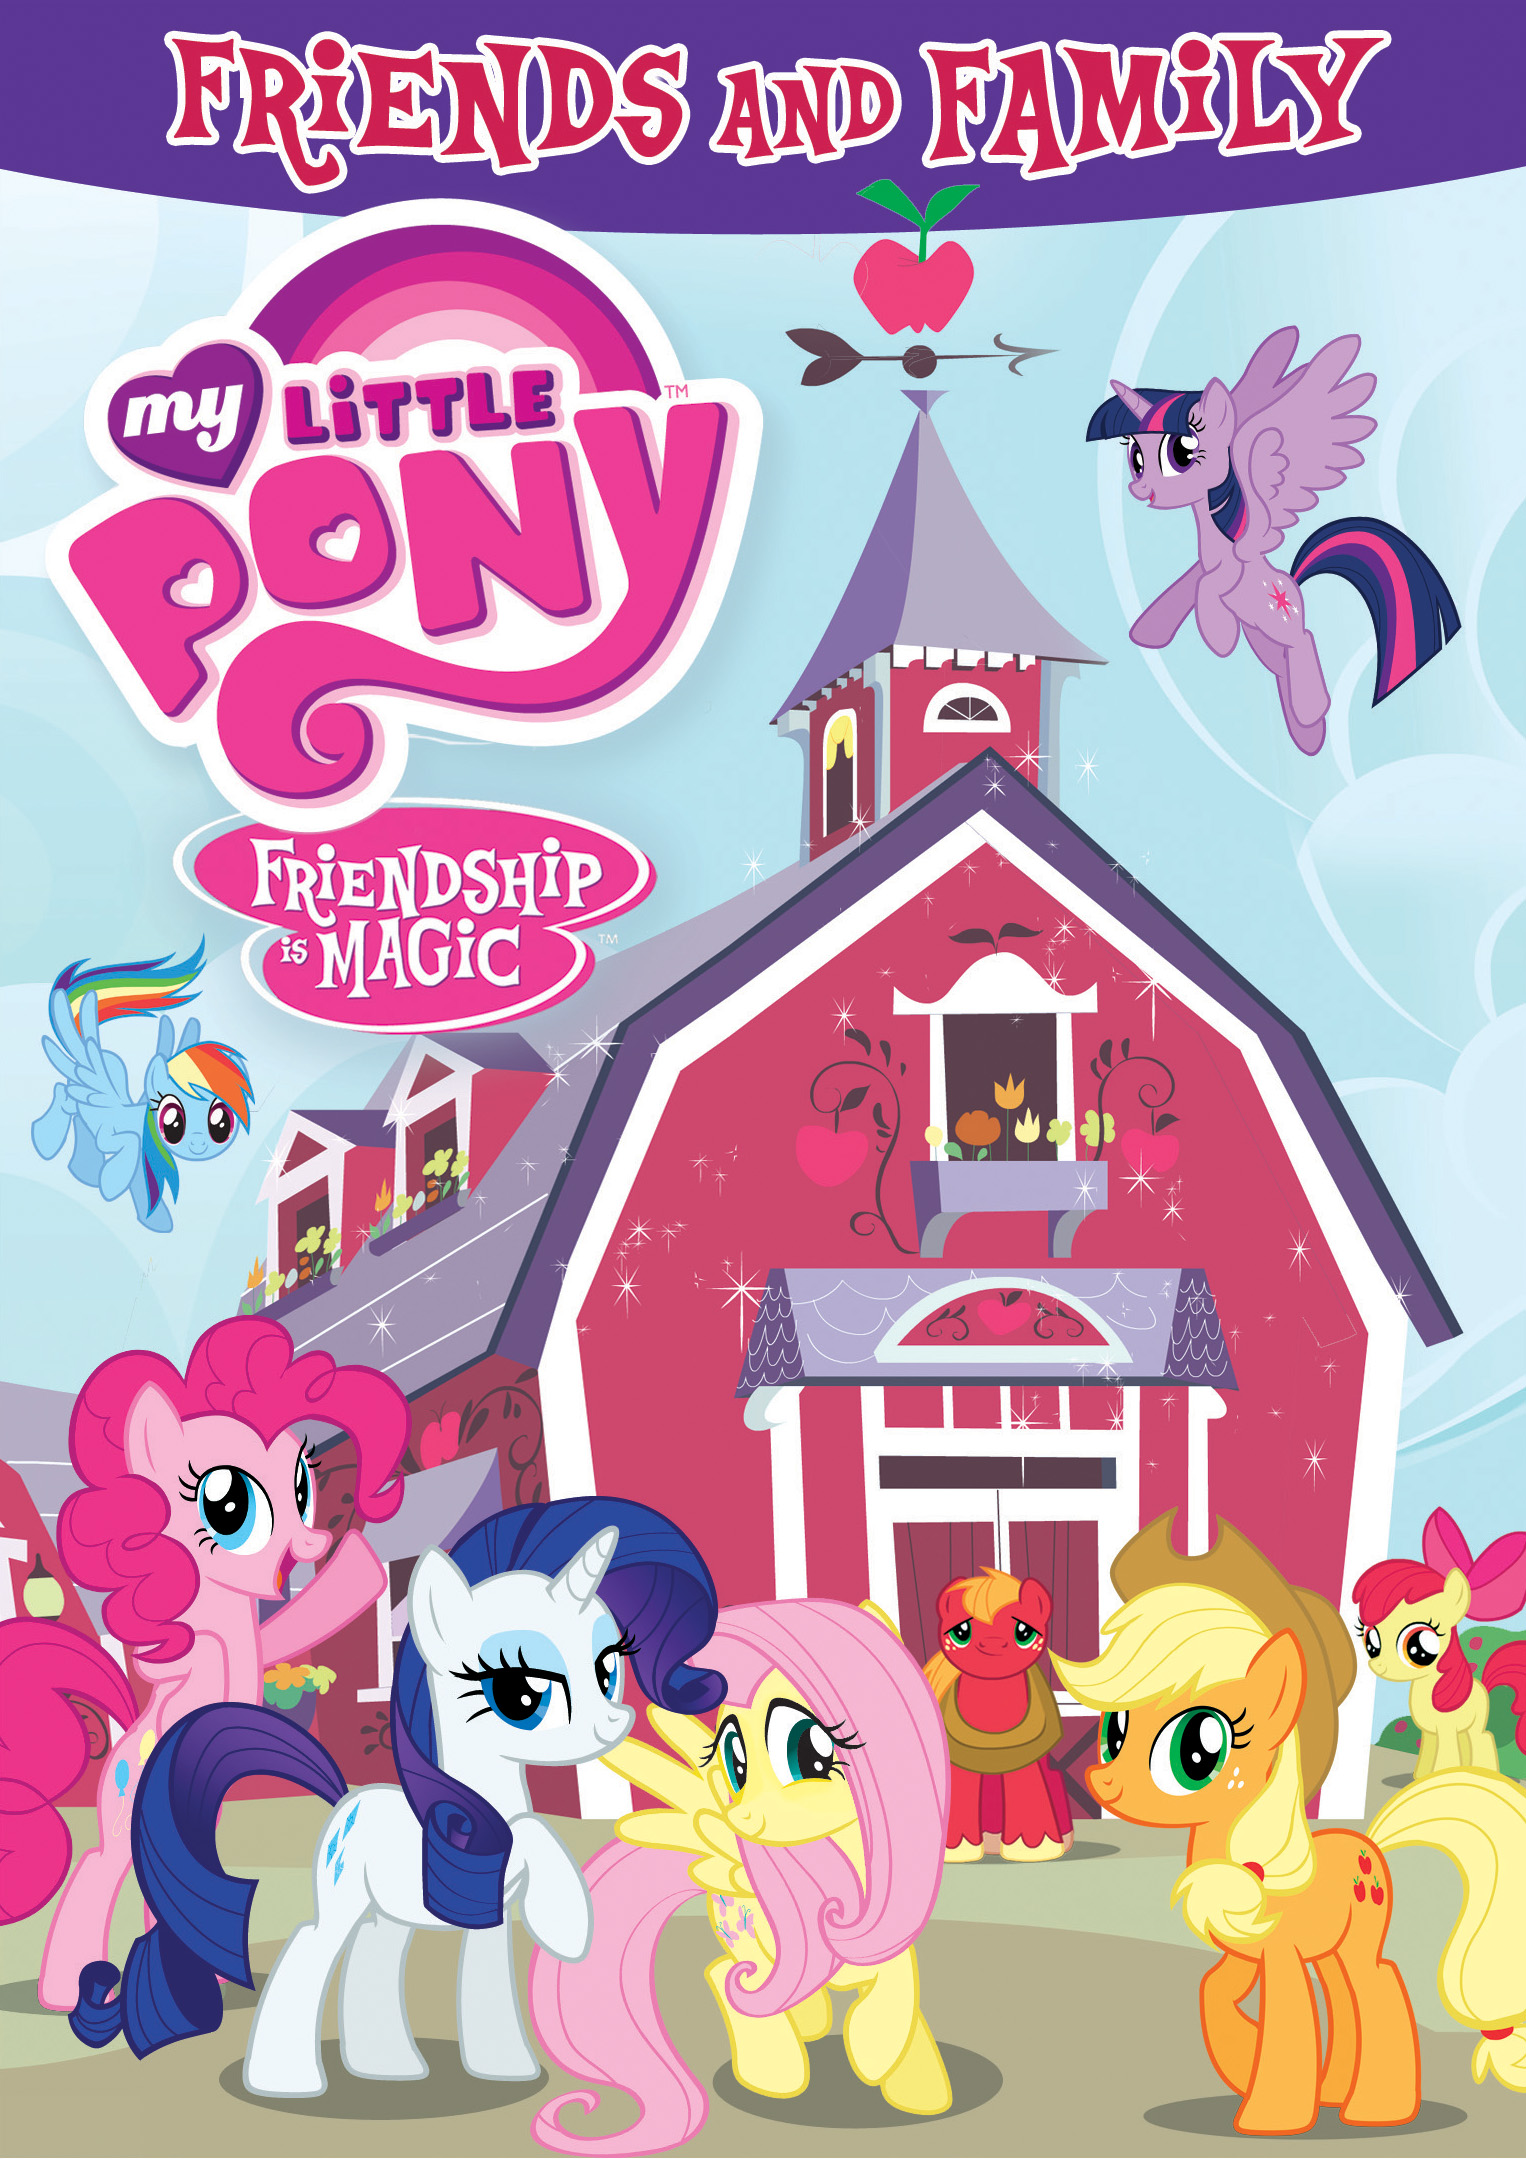 My Little Pony Friendship is Magic: Friends And Family